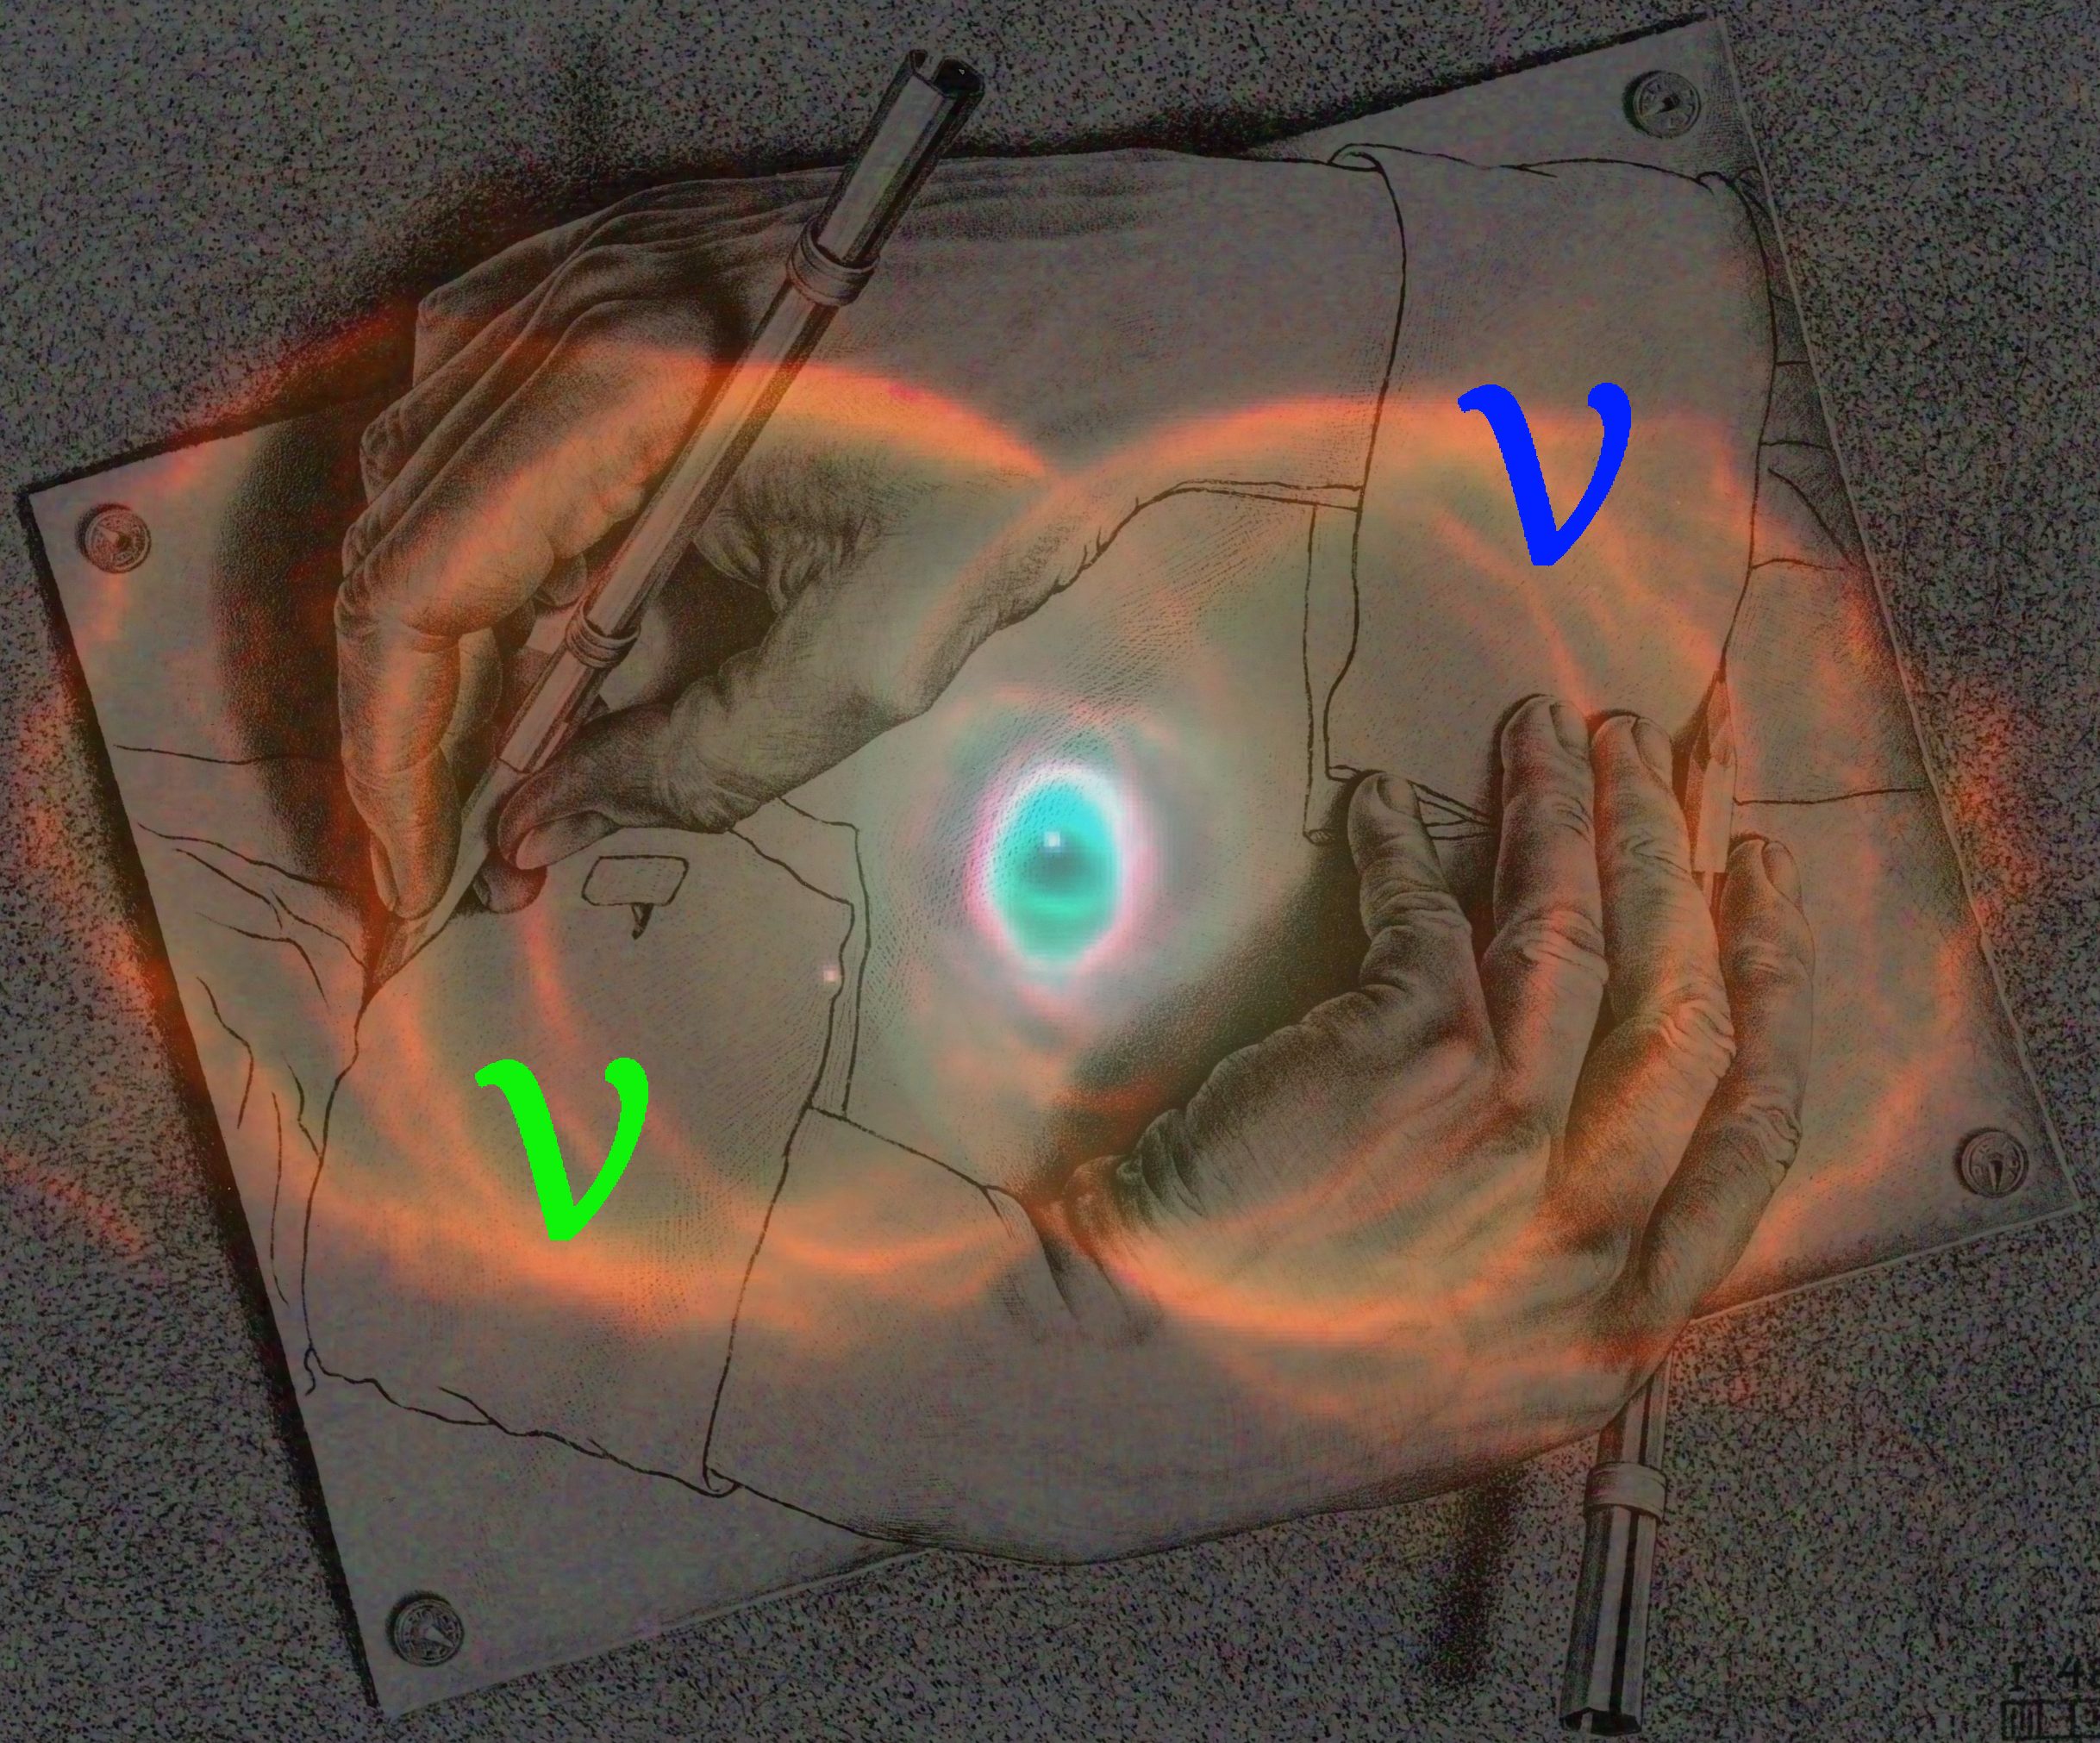 Thumbnail for the post titled: Probing Quantum Entanglement in a Gas of Oscillating Neutrinos